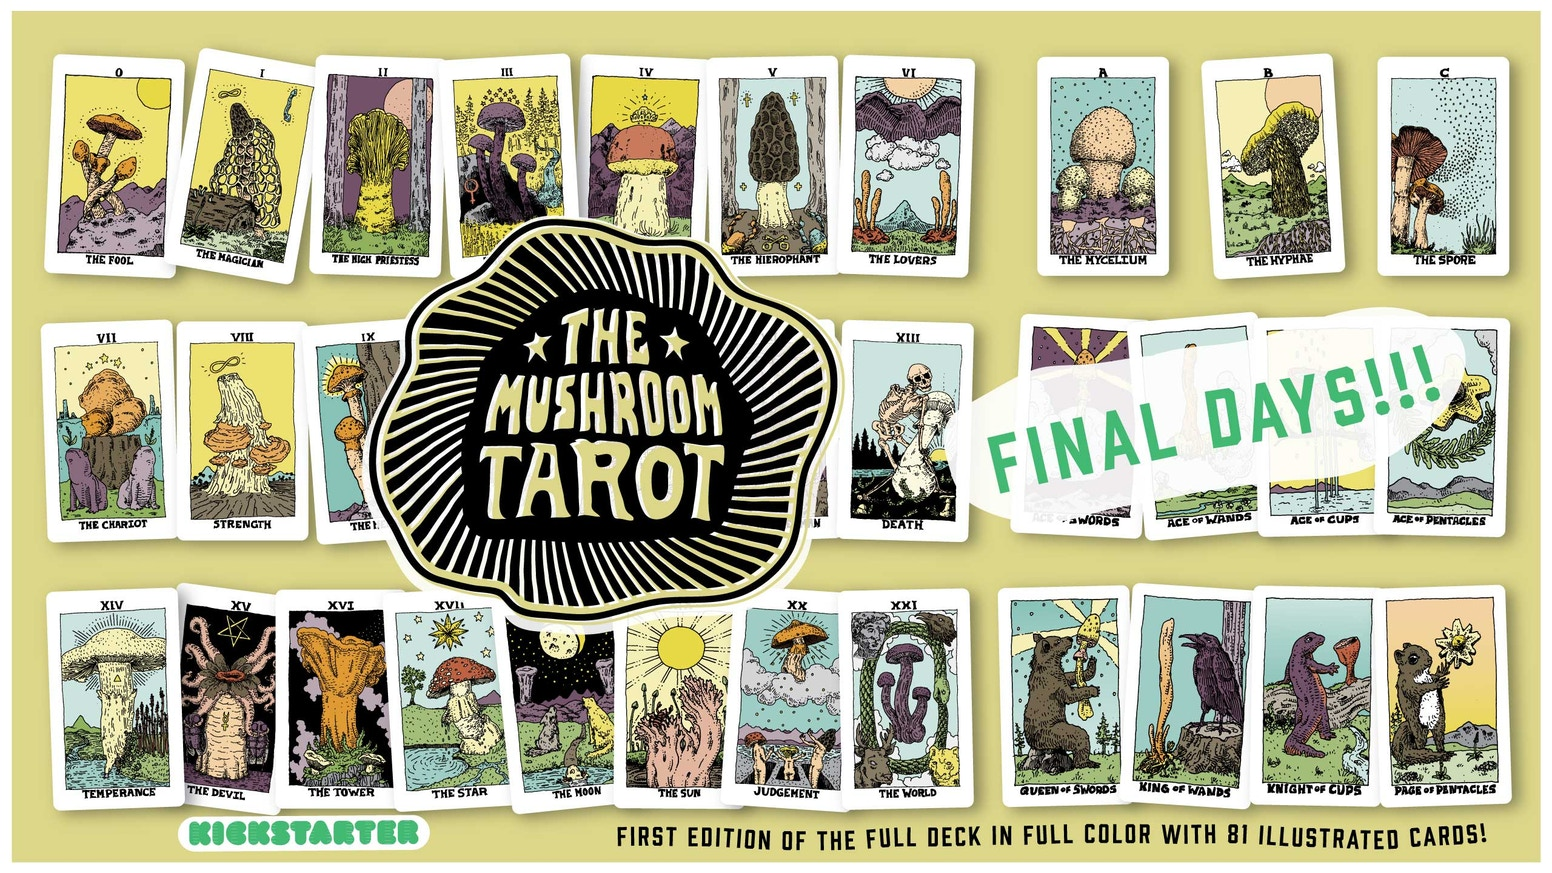 The Mushroom Tarot will include the 78 Cards of the Major & Minor Arcana & 3 Mushroom Guide cards in Full Color!